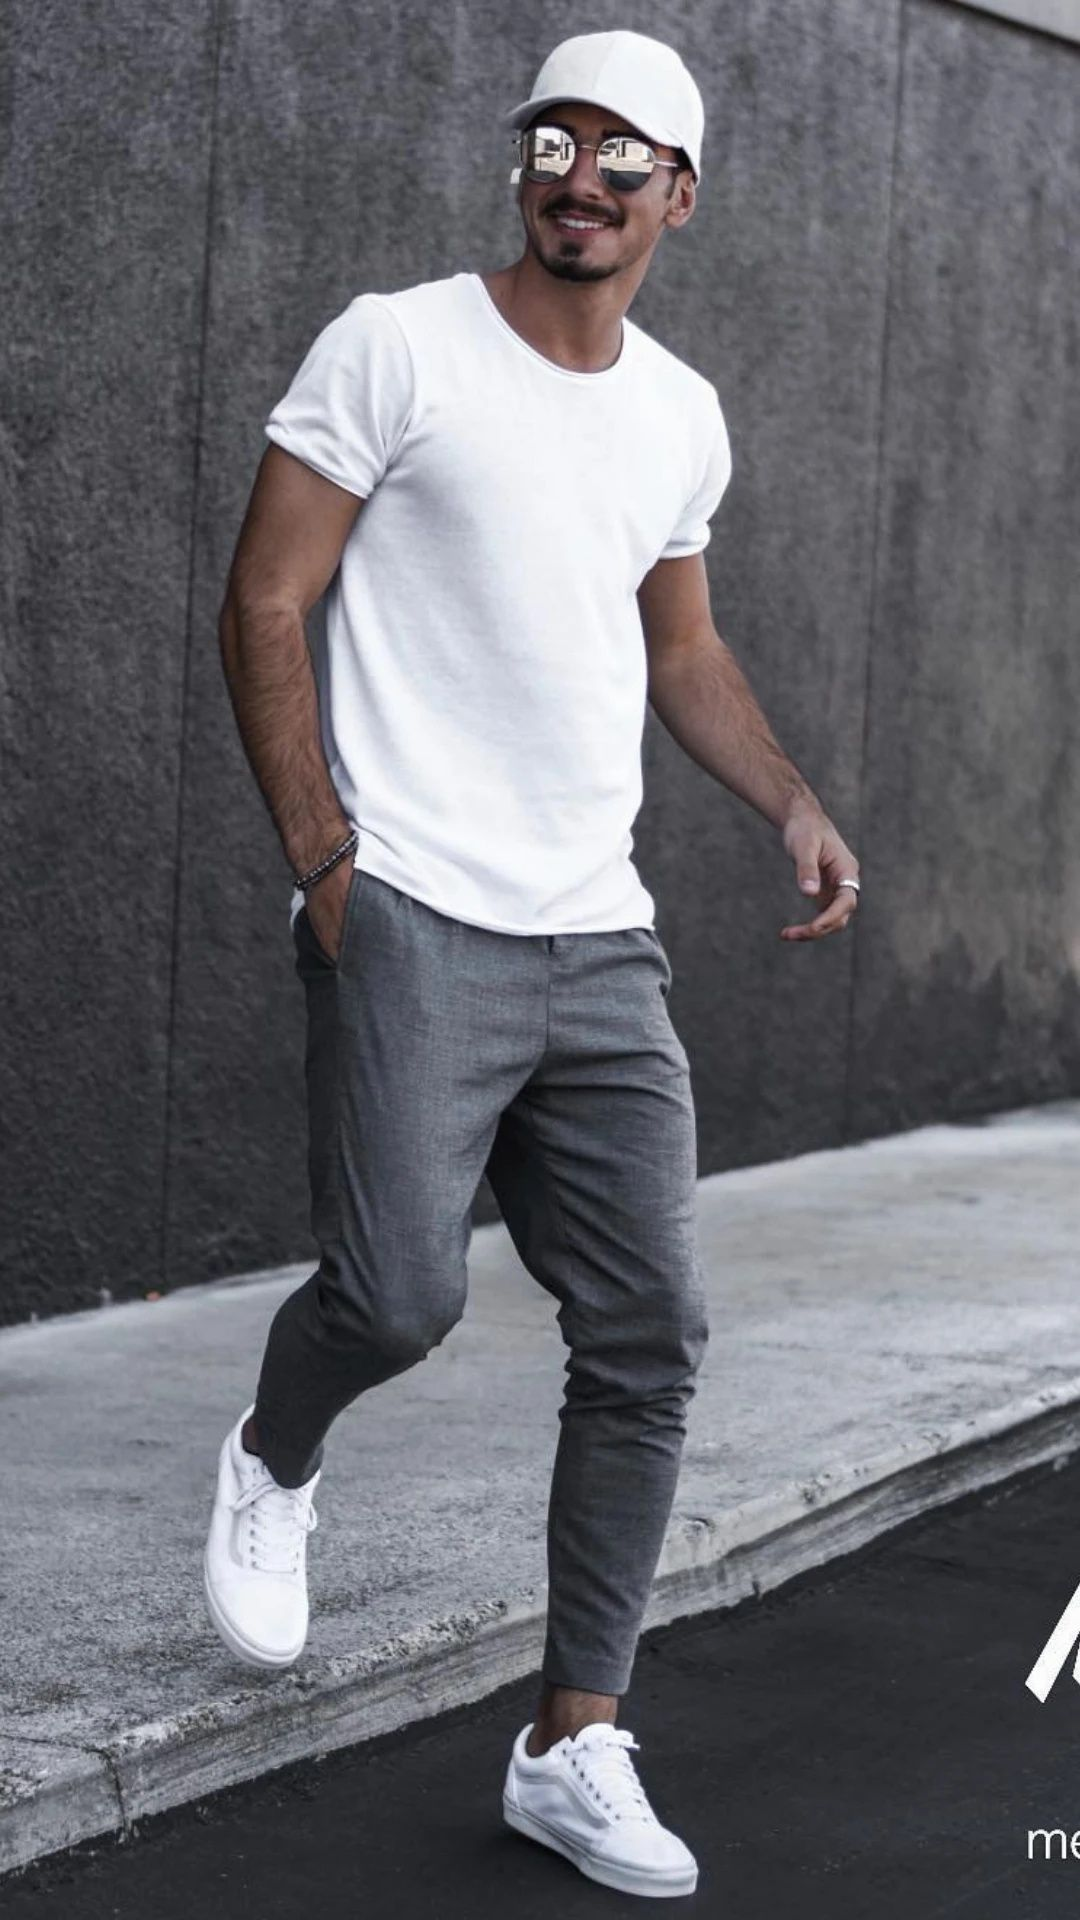 20 Joggers Outfits For Men   Mens casual outfits summer, Stylish ...